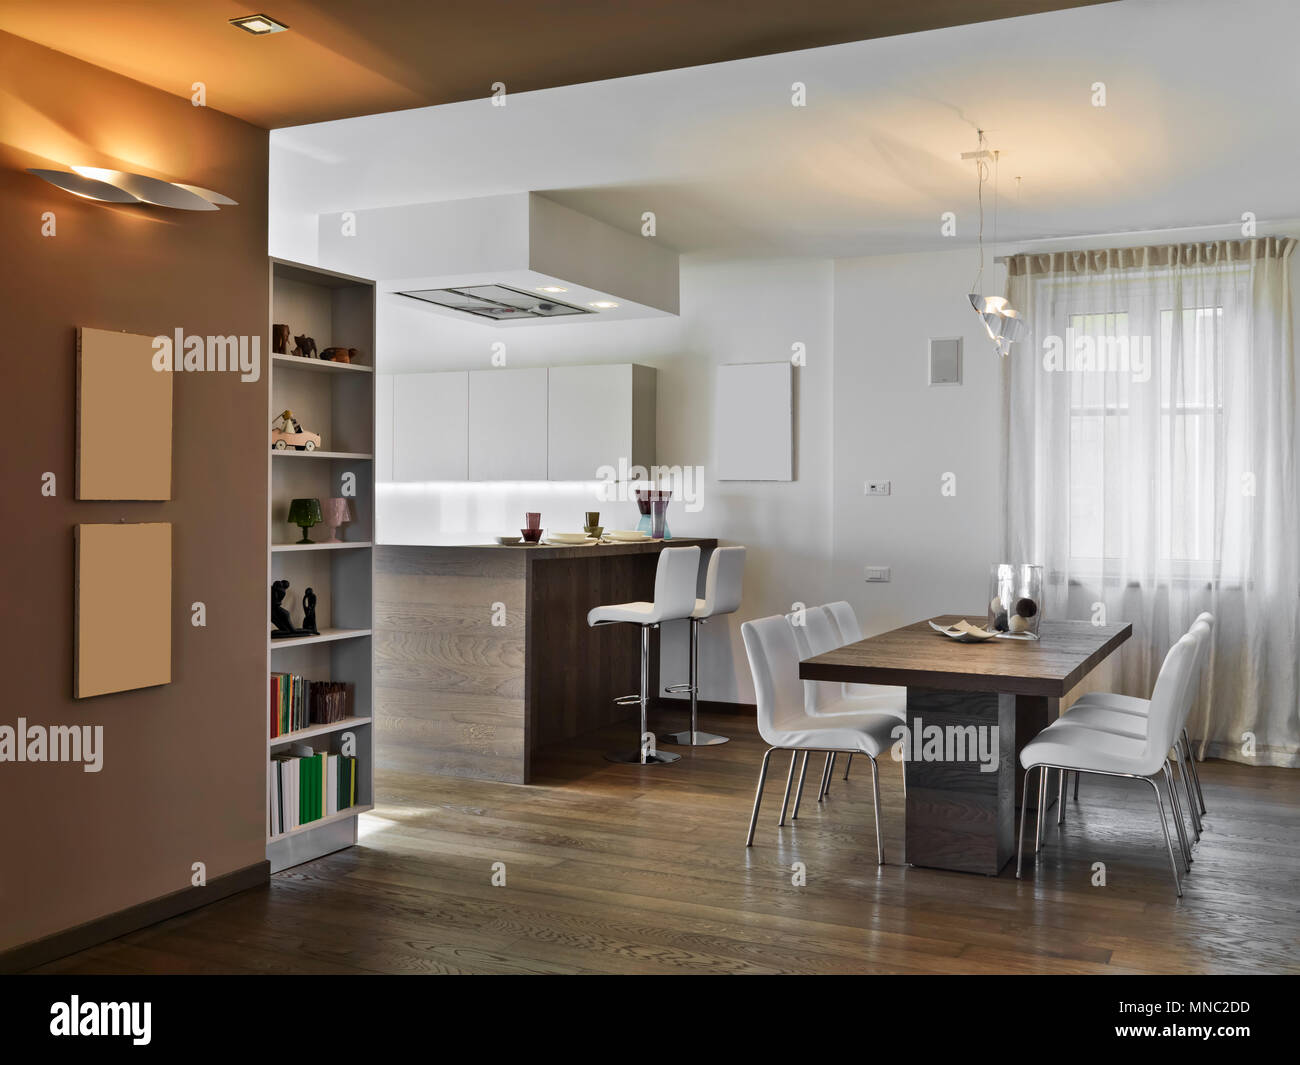 interiors shots of a modern apartment in the foreground the wooden dining table and his fabric chairs on the background - Stock Image